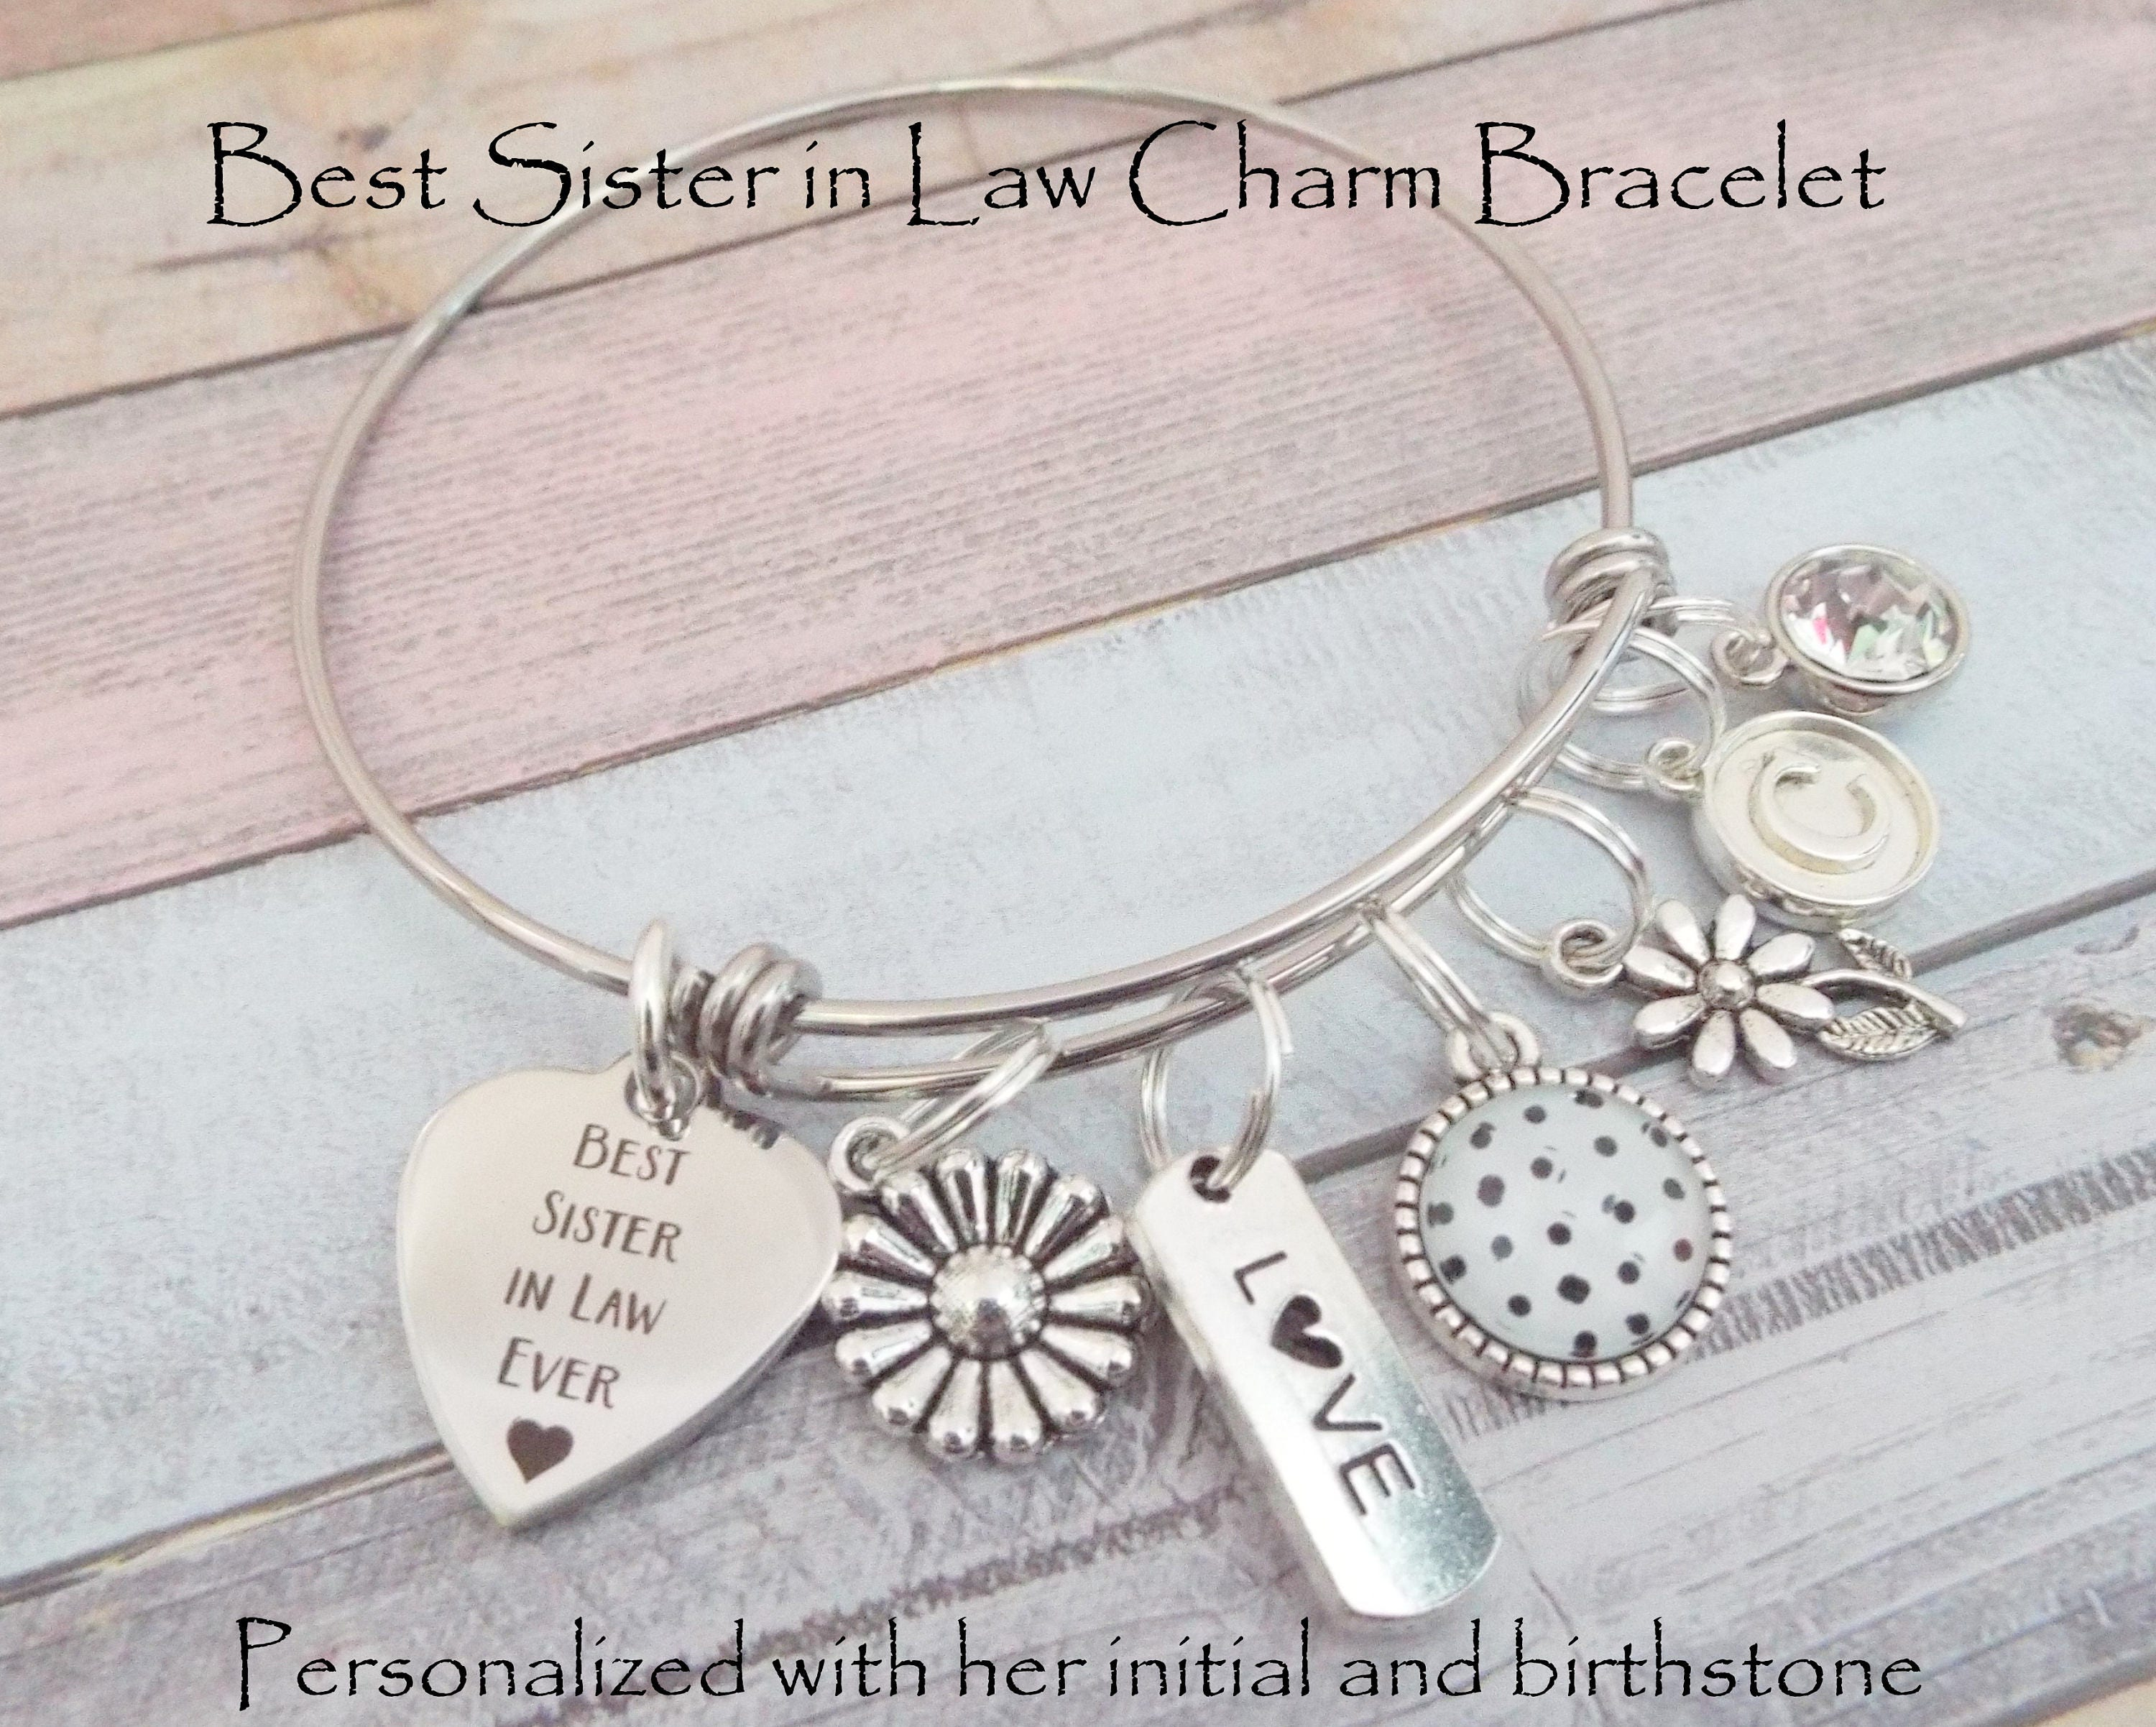 Wedding Gifts For Sister In Law: Sister In Law Gift, Birthday Gift For Sister In Law